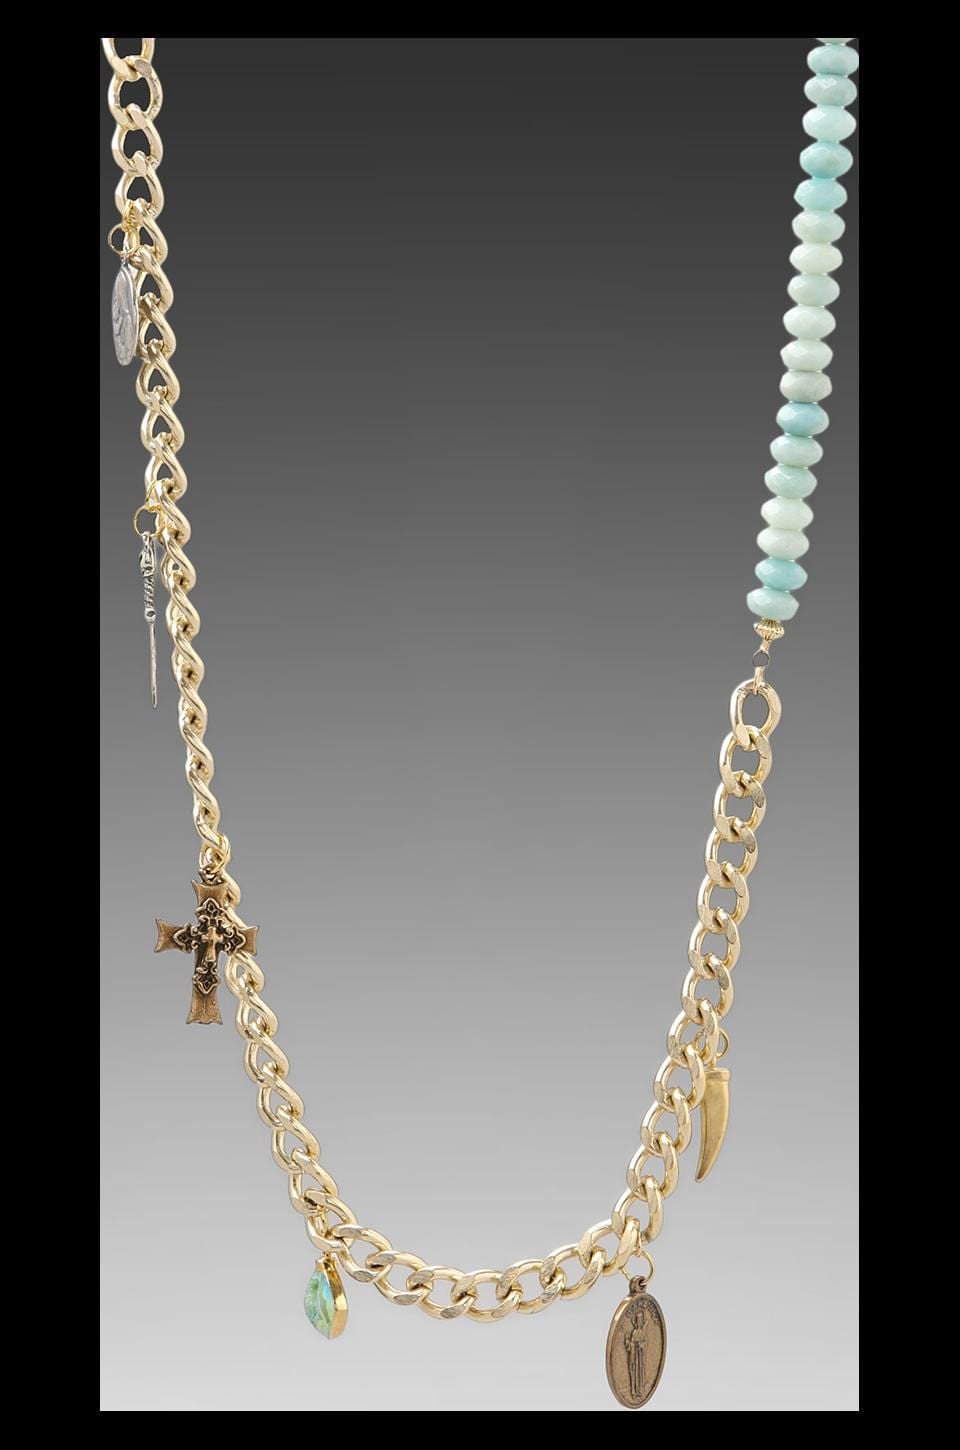 JNB DEPRECATED JNB Hana Bracelet in Gold/Turquoise